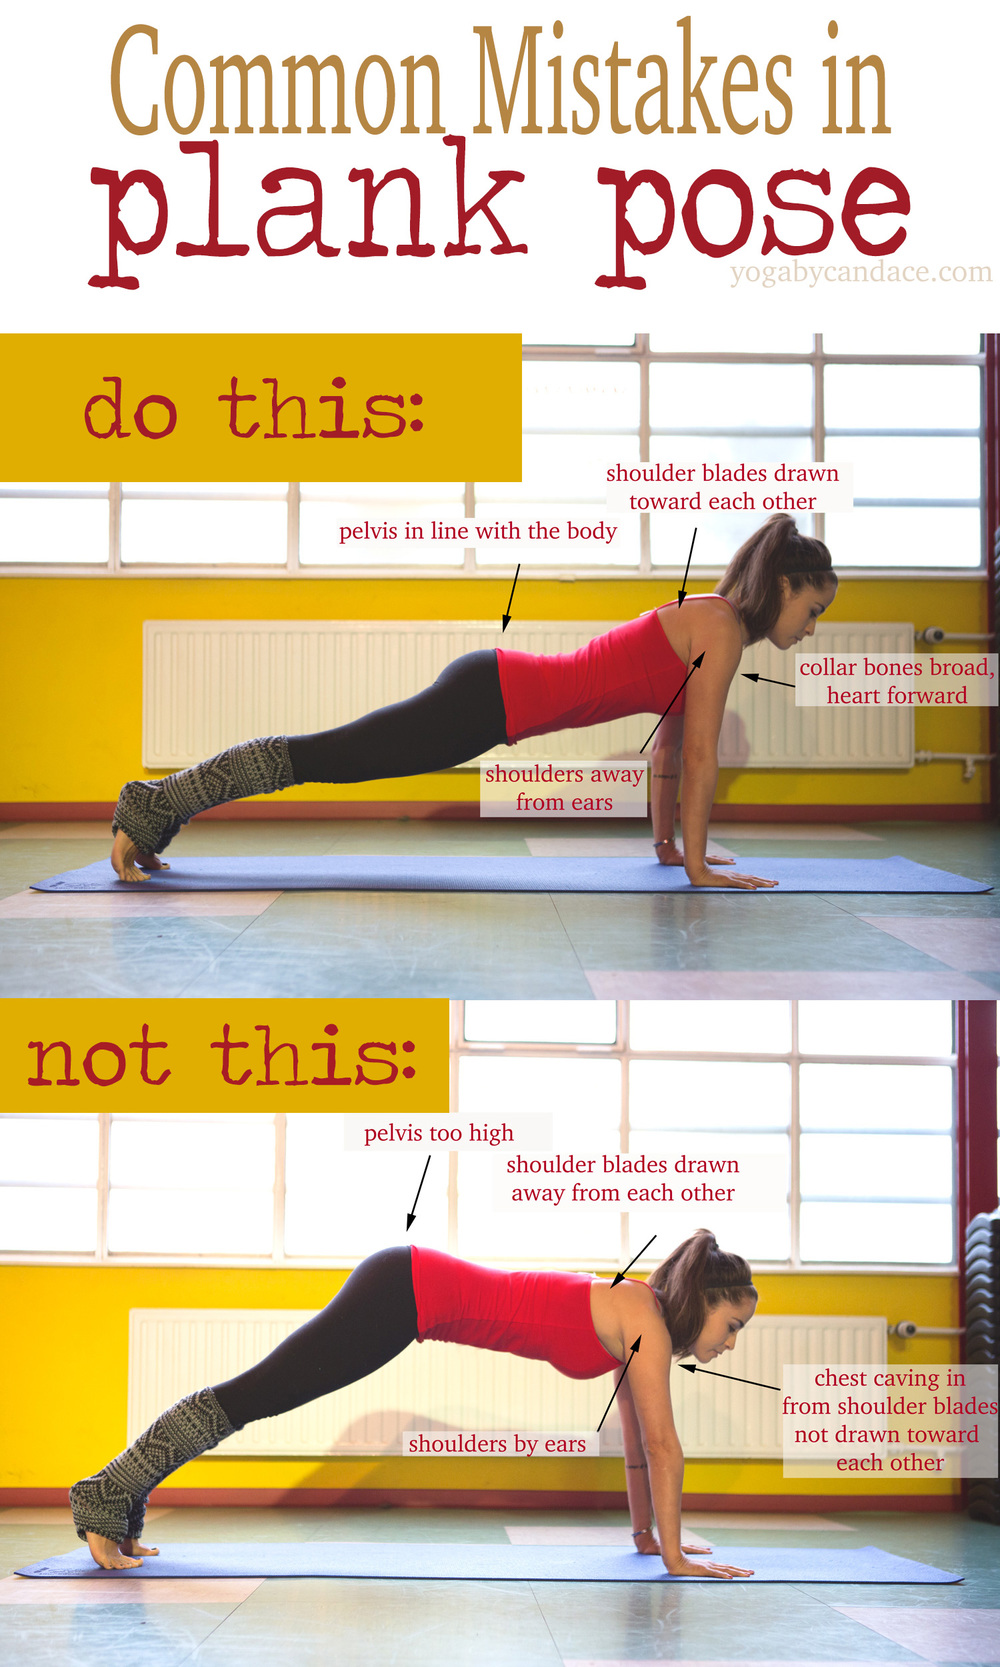 Pin it! Common mistakes in plank pose and how to fix them.